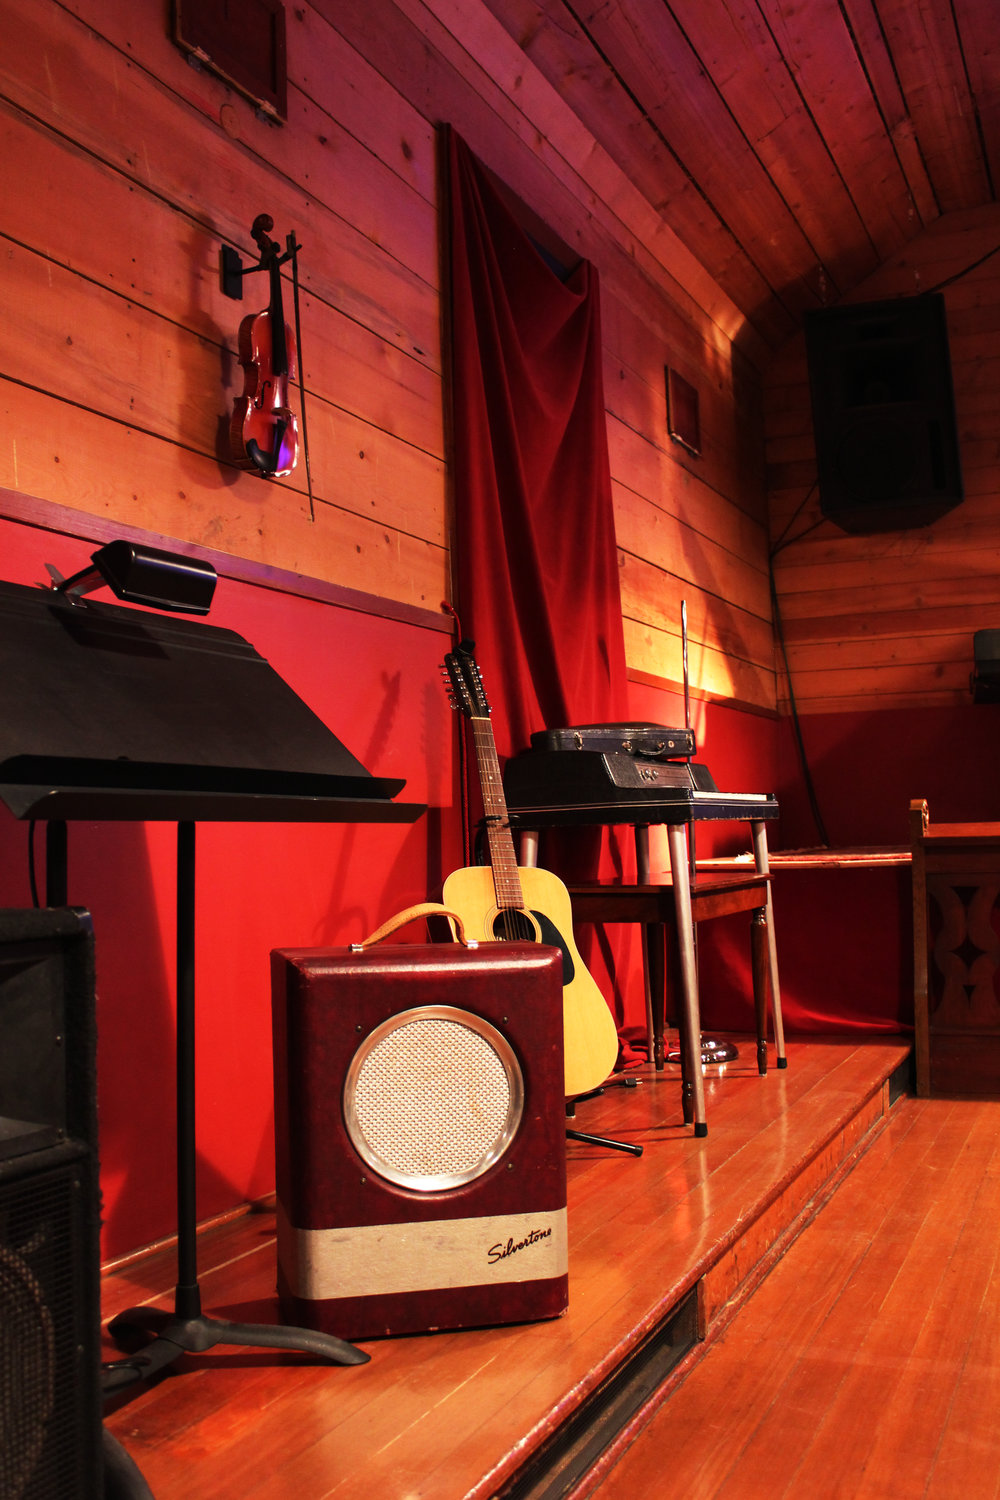 All kinds of interesting musical treasures abound inside this remodeled Grange hall.